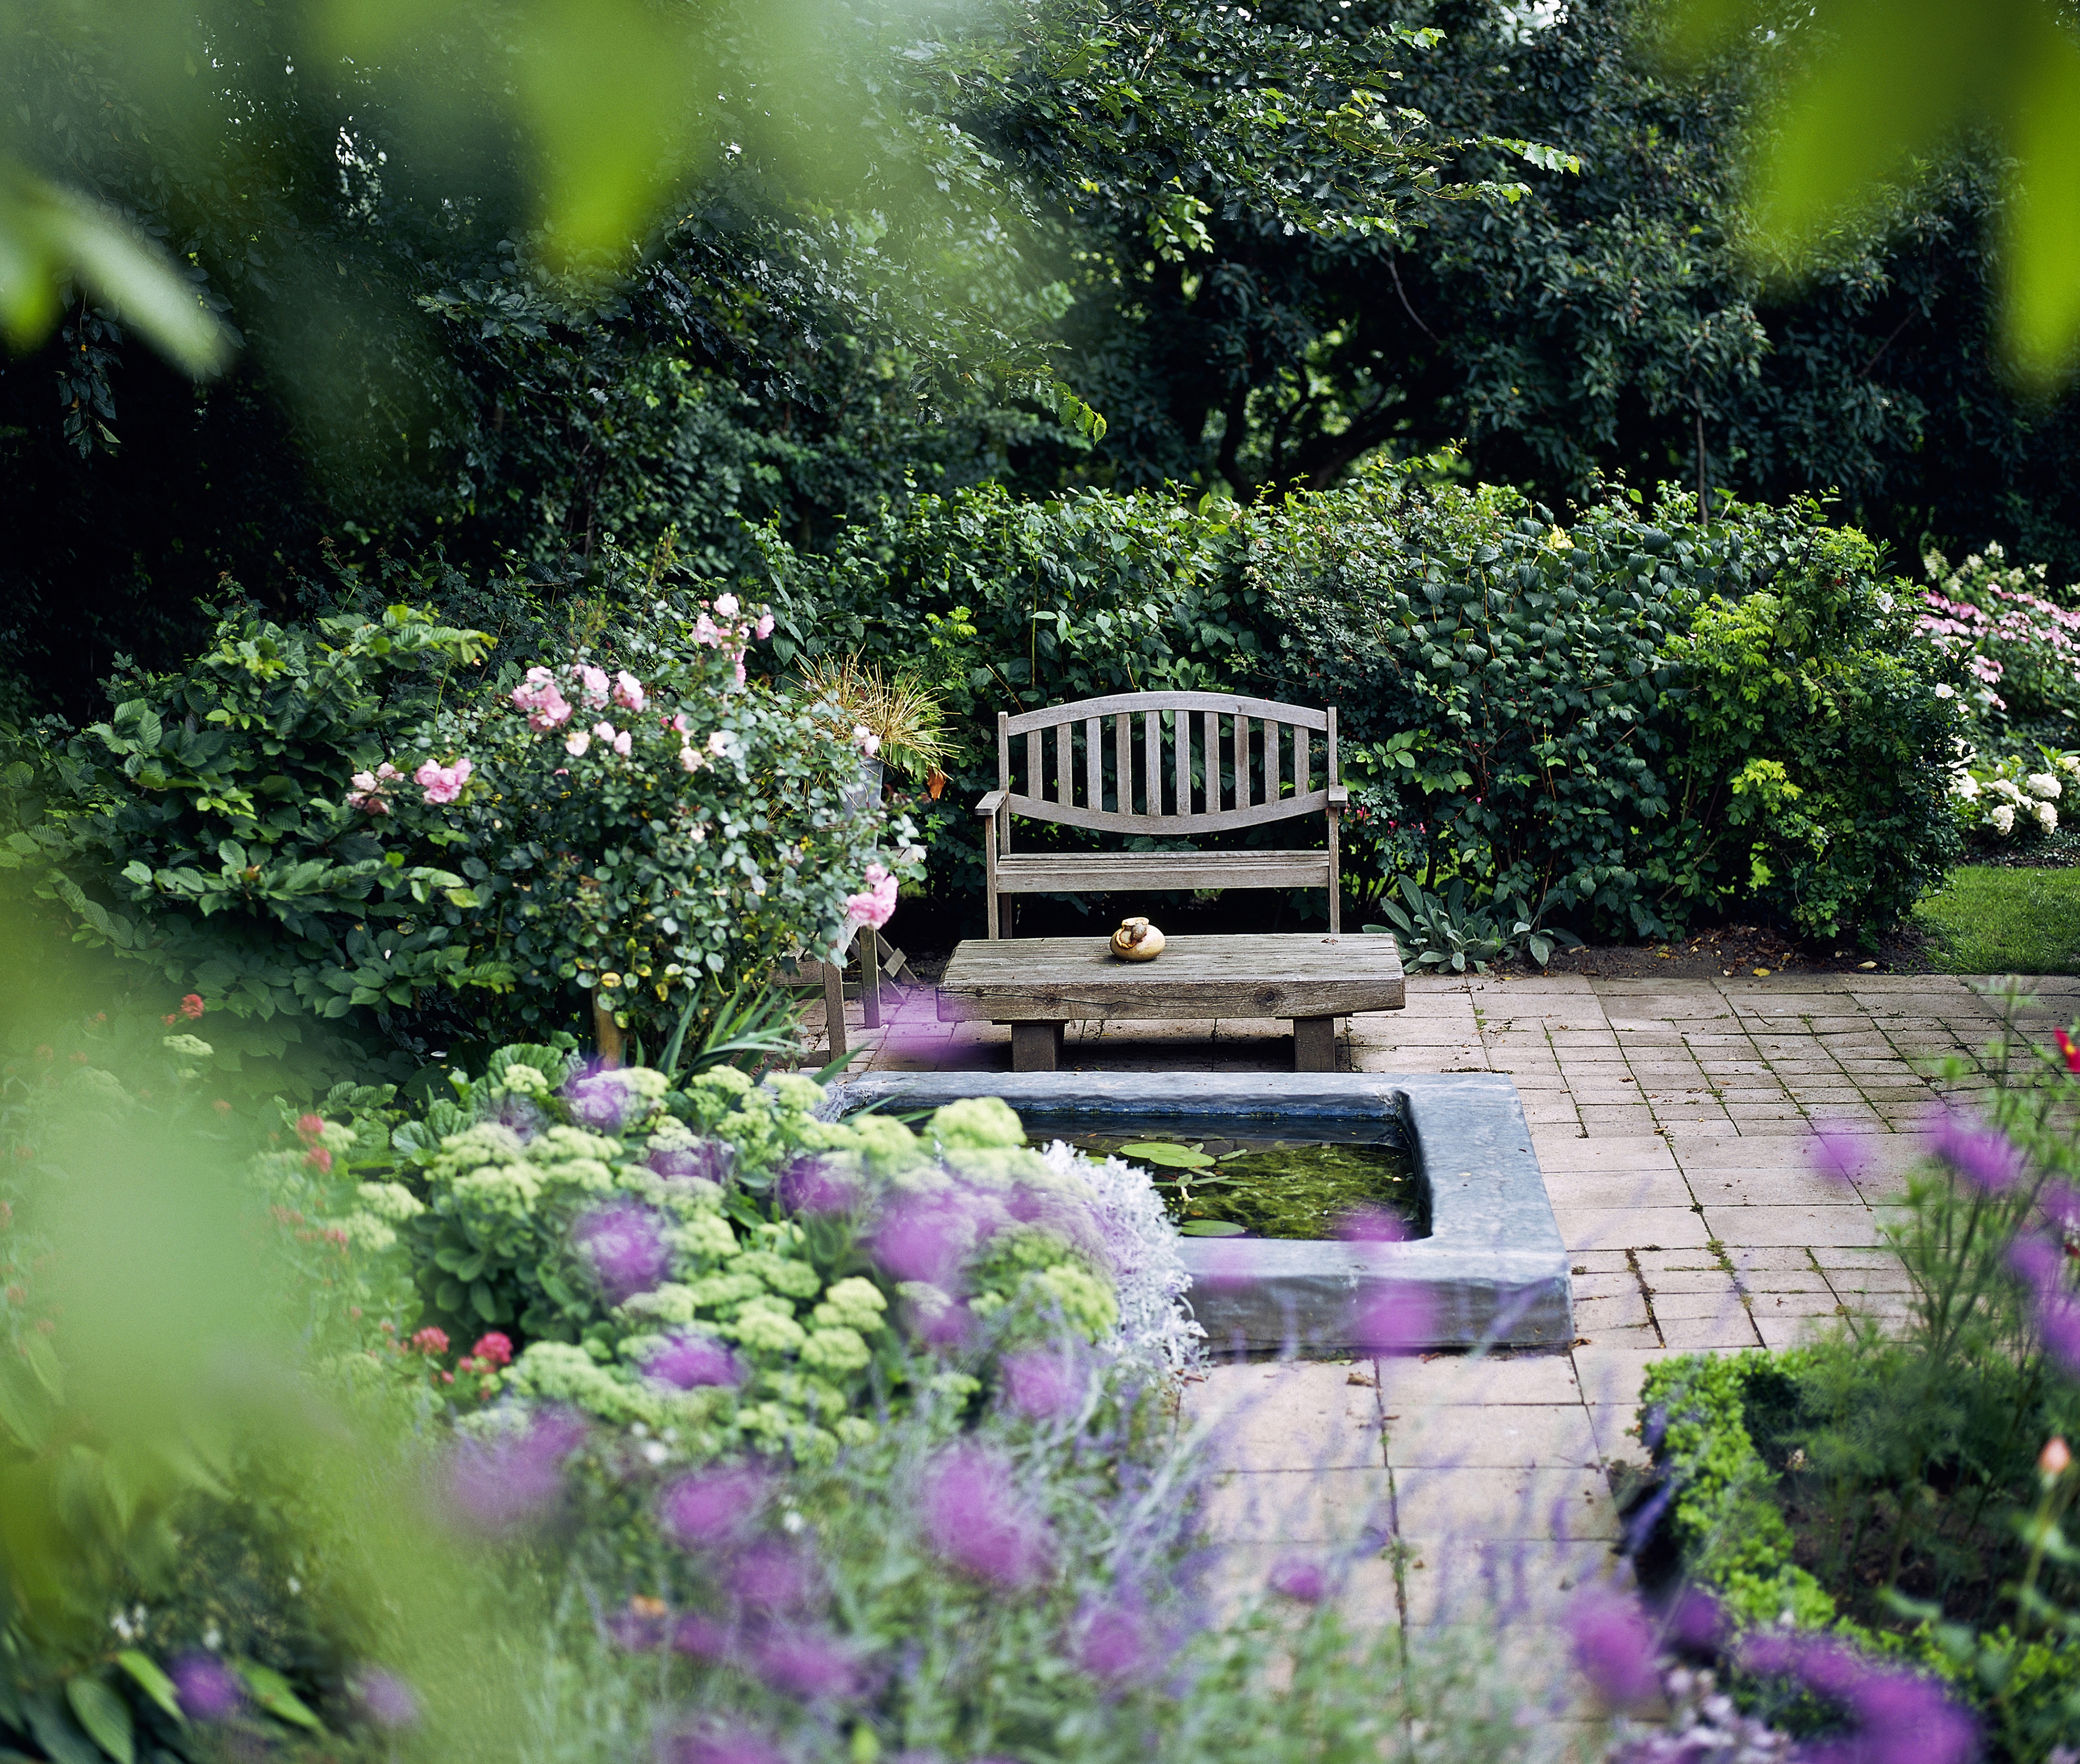 Private Backyard with Flowers and Shrubs